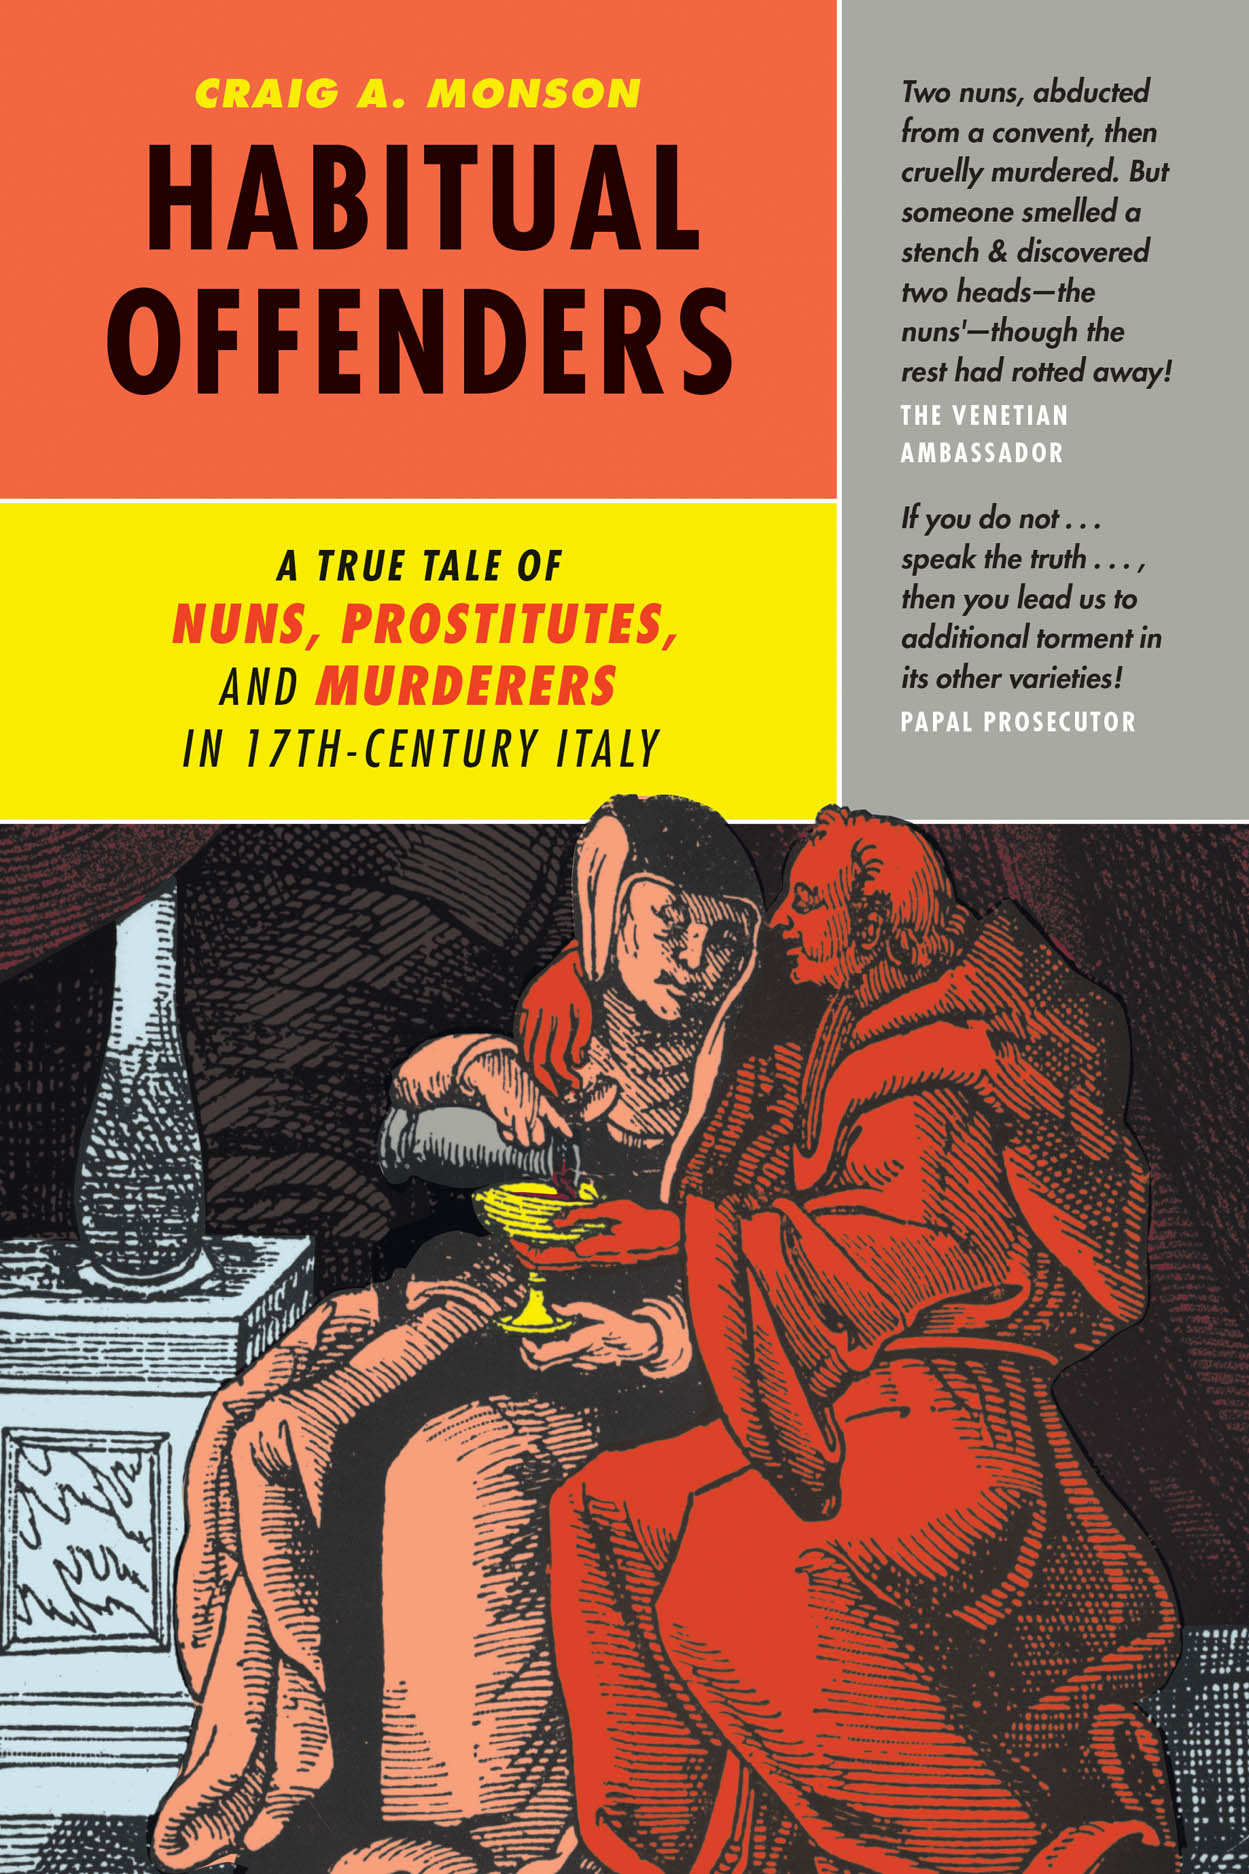 Habitual Offenders: A True Tale of Nuns, Prostitutes, and Murderers in Seventeenth-Century Italy